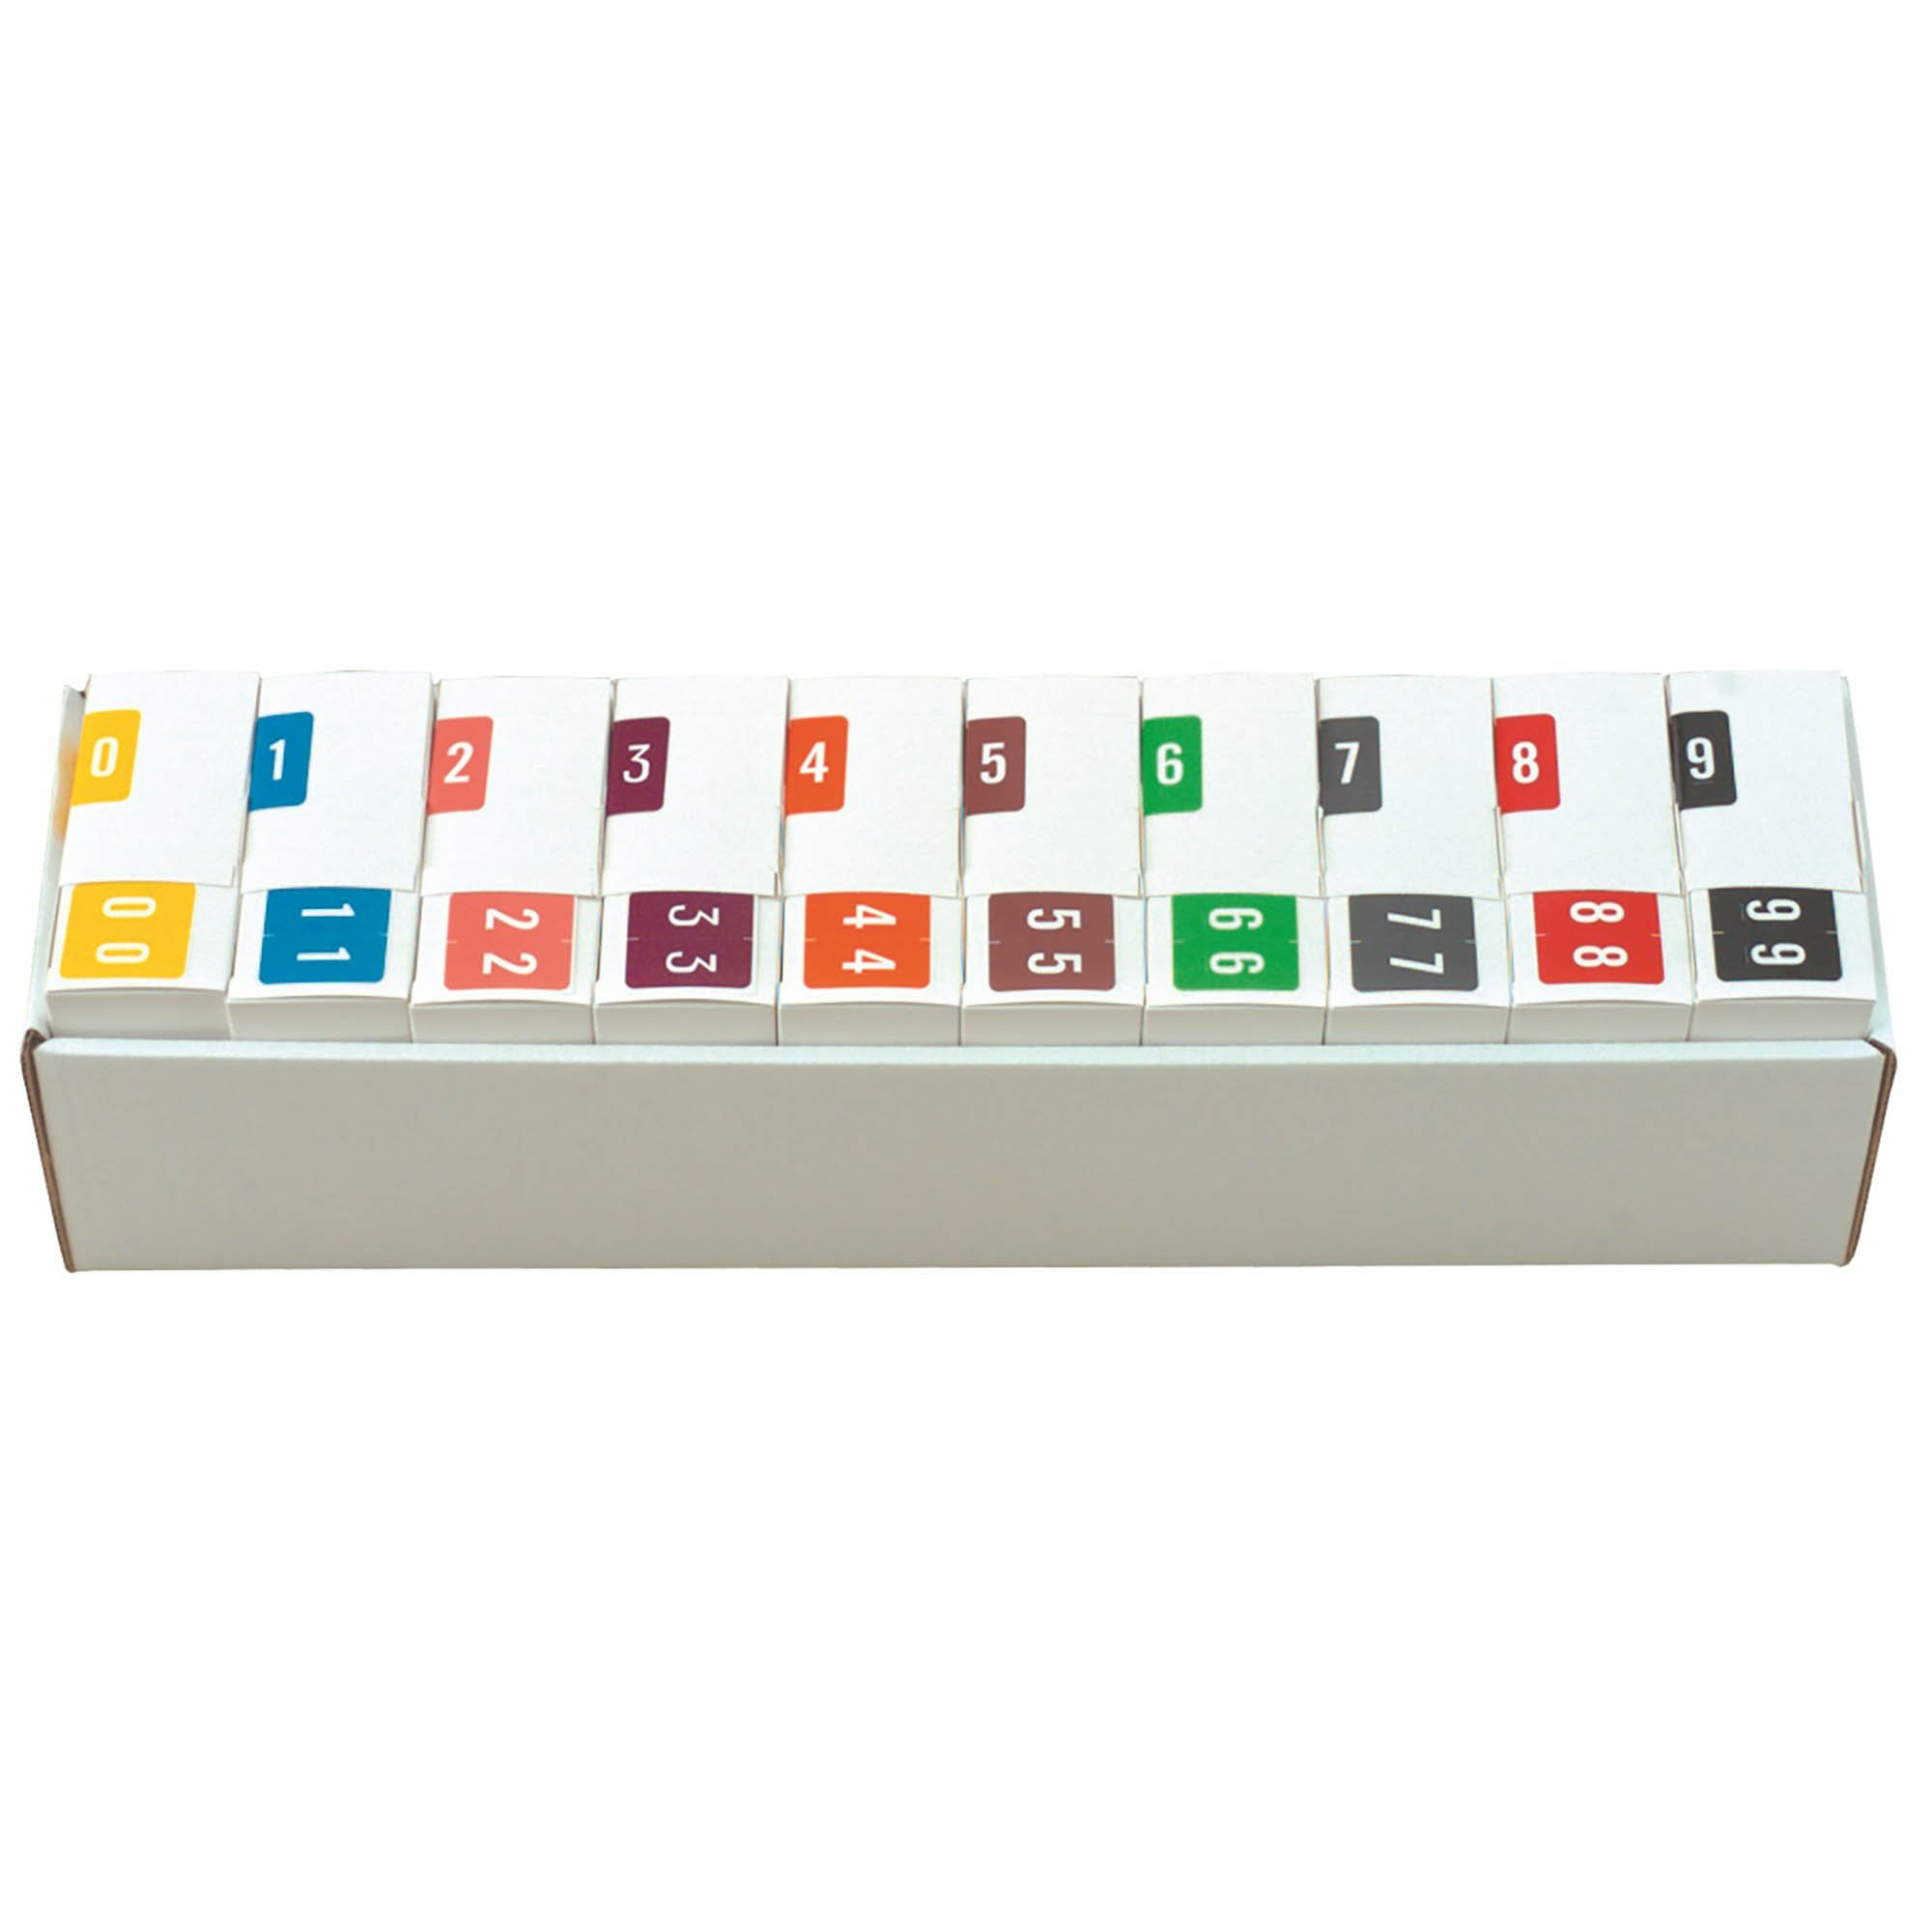 Smead/Barkley FNSDM Match SBNM Series Numeric Roll Labels - Set of Number 0 To 9